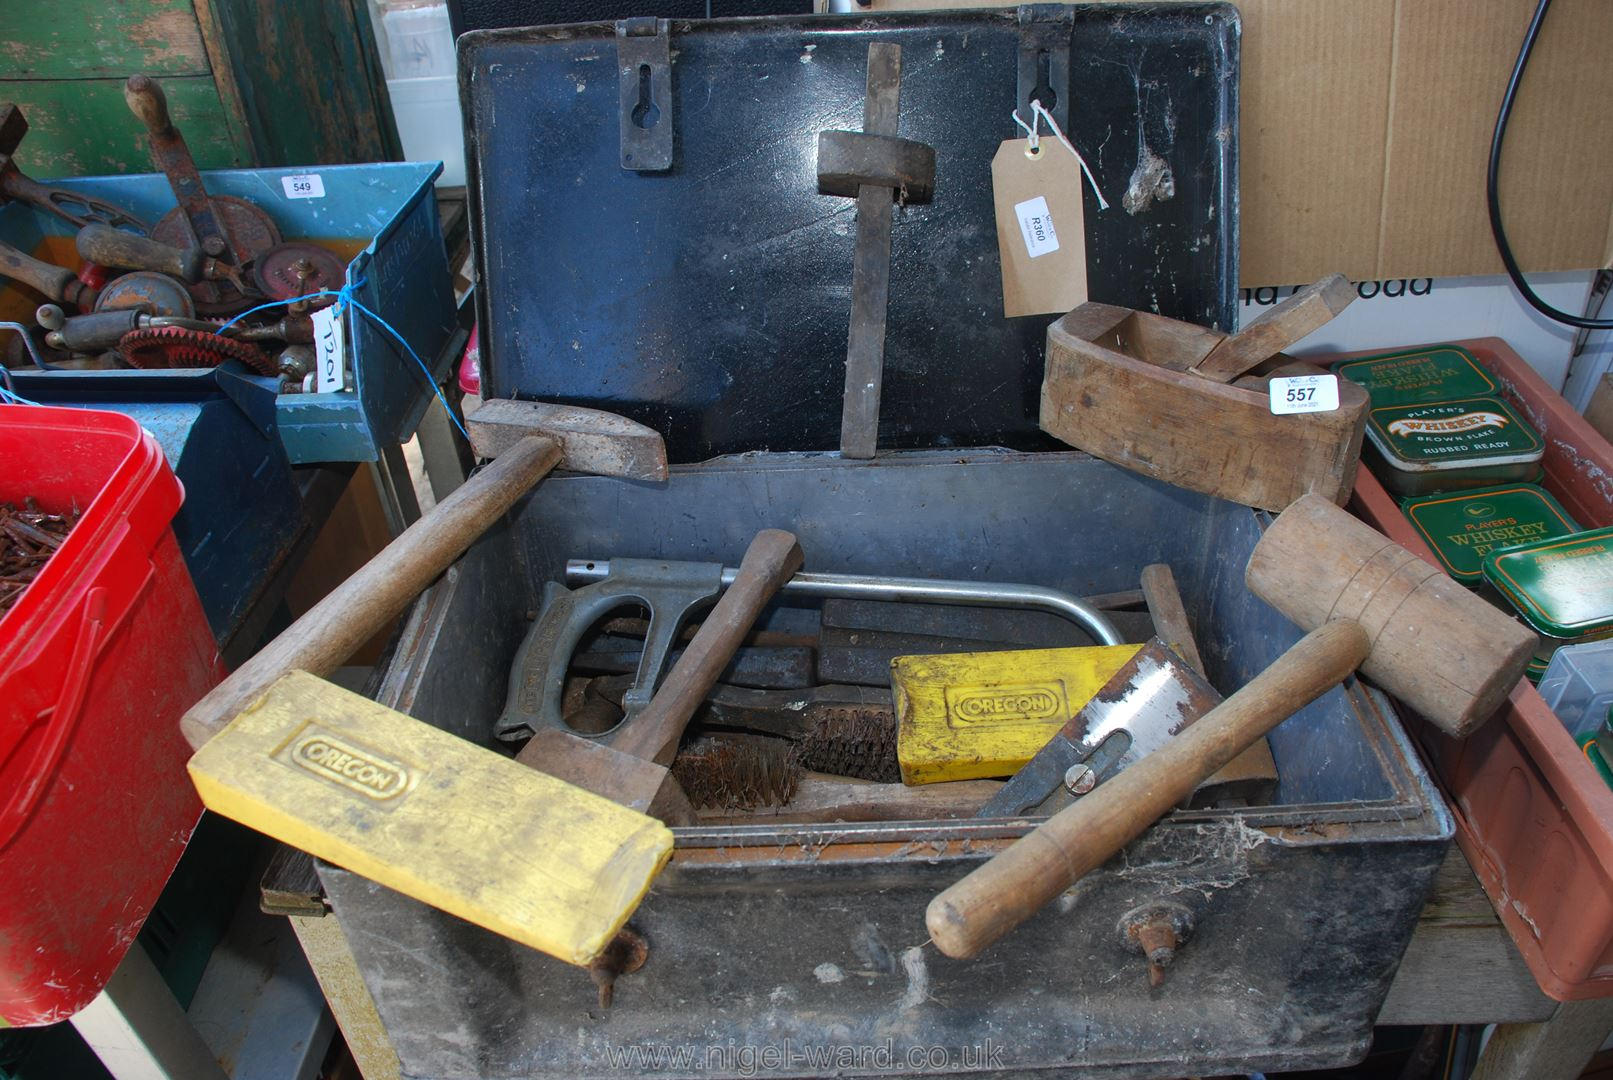 A metal box containing marking gauge, mallet, planes, tools etc.